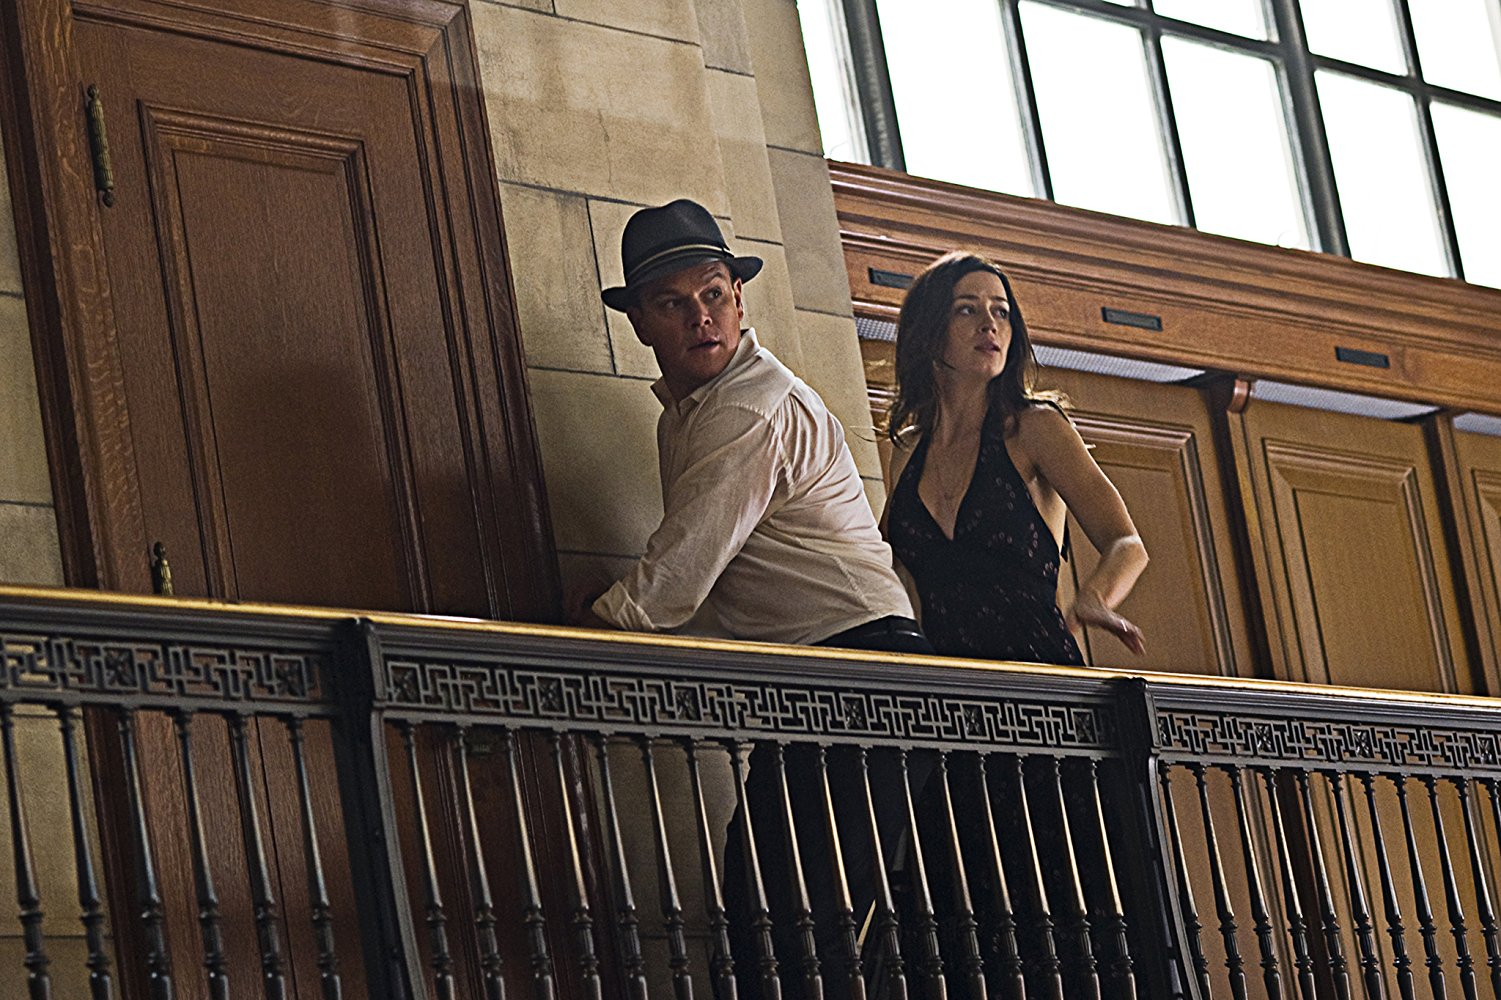 Matt Damon and Emily Blunt on the run from The Adjustment Bureau (2011)